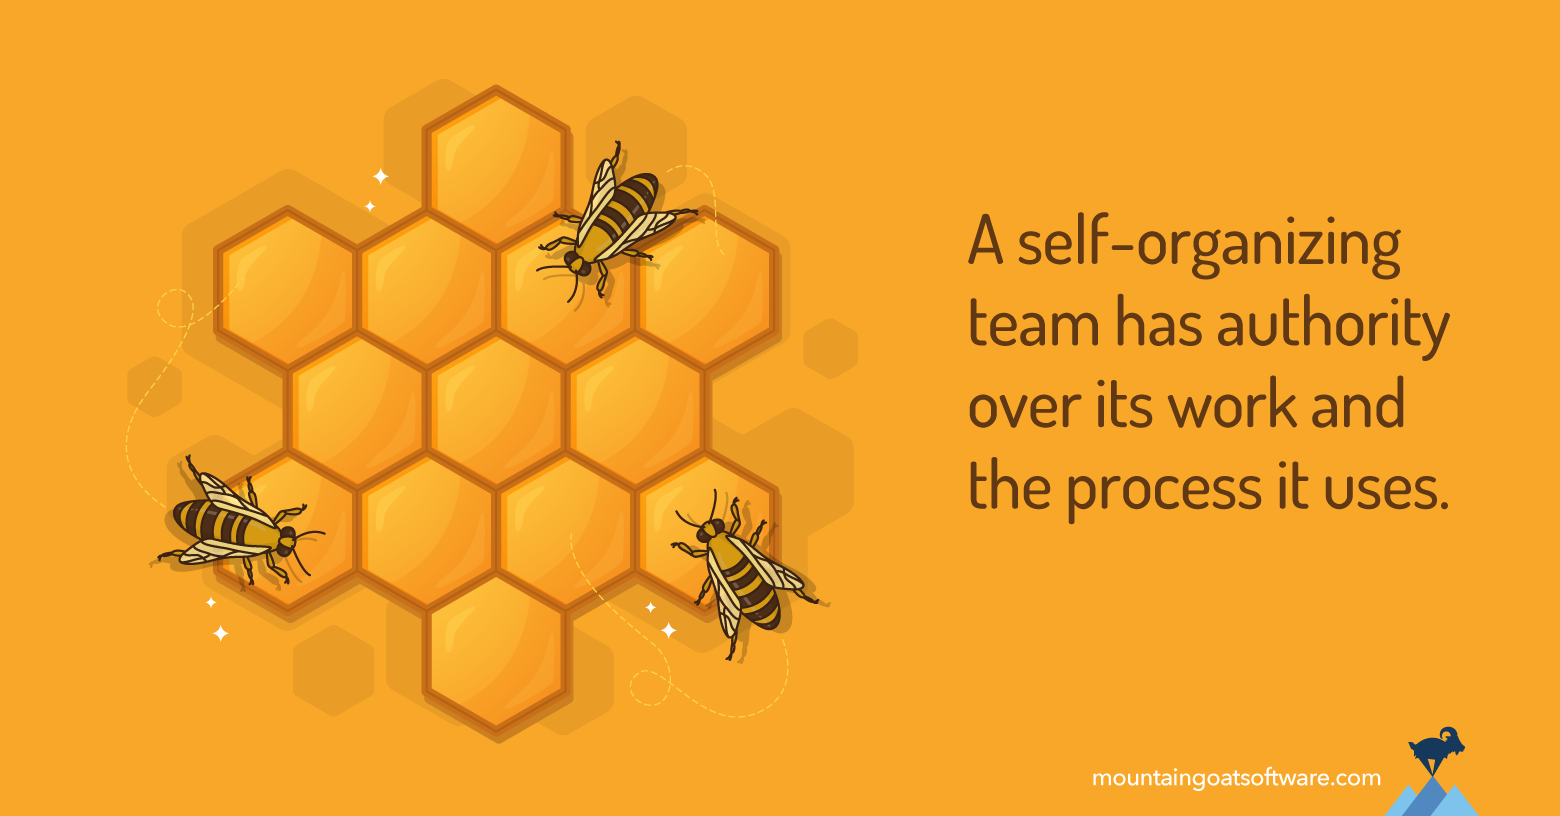 Beehive illustrating self-organizing teams.